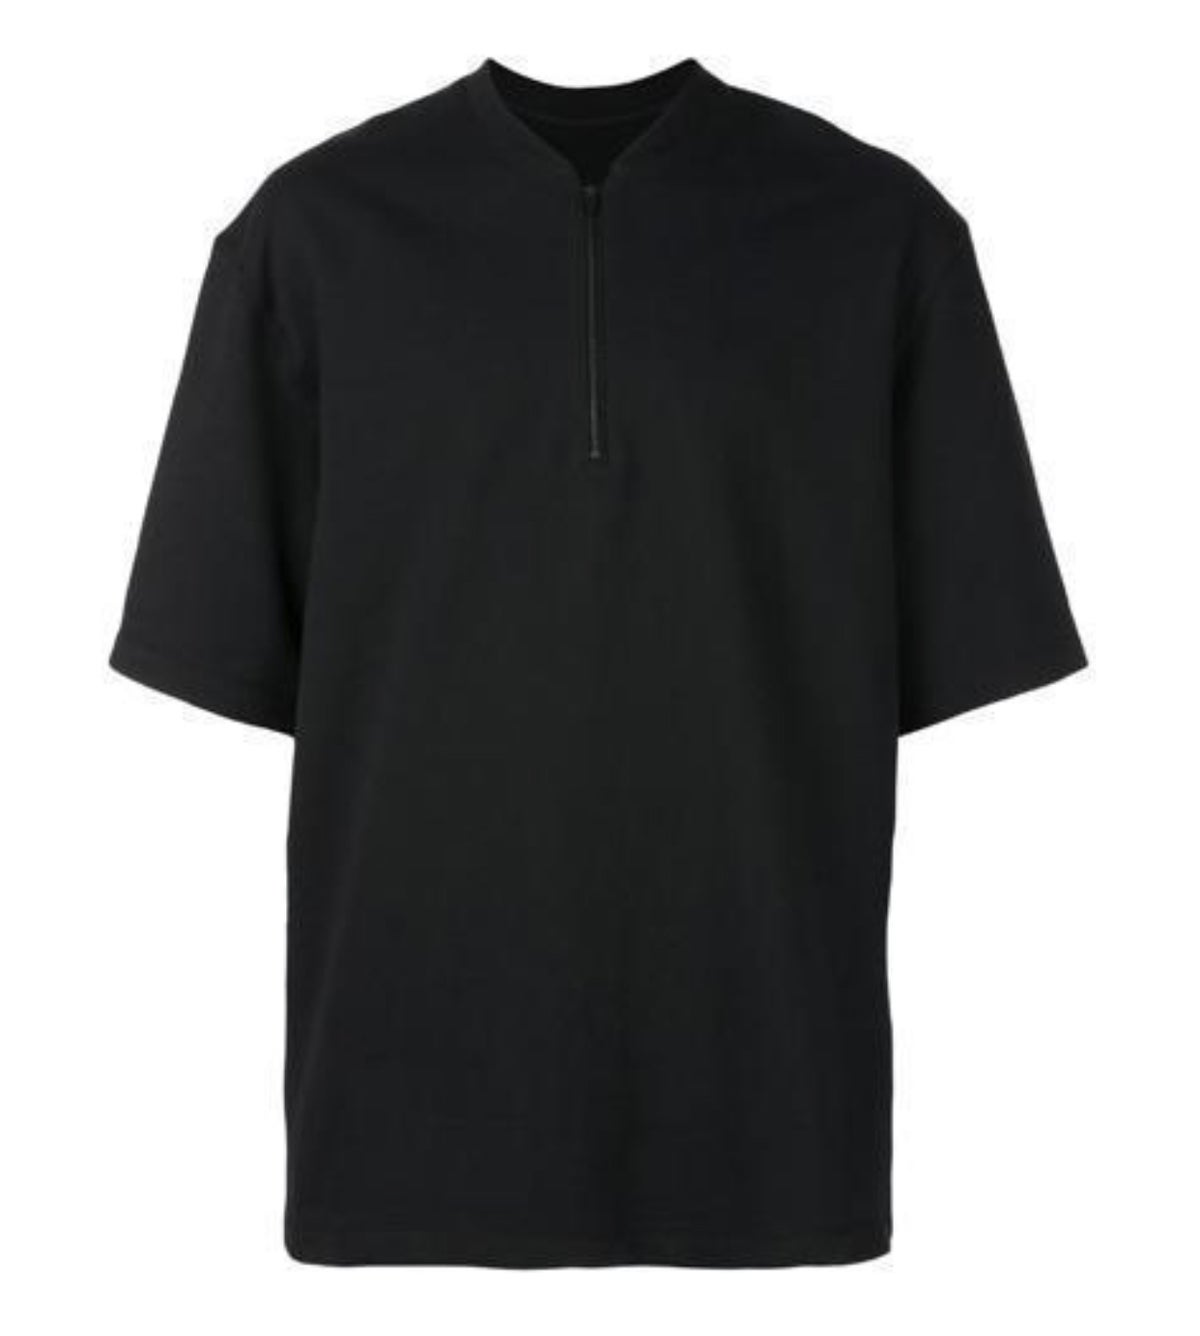 Image of FEAR OF GOD HALF ZIP SWEATSHIRT SHORT SLEEVE